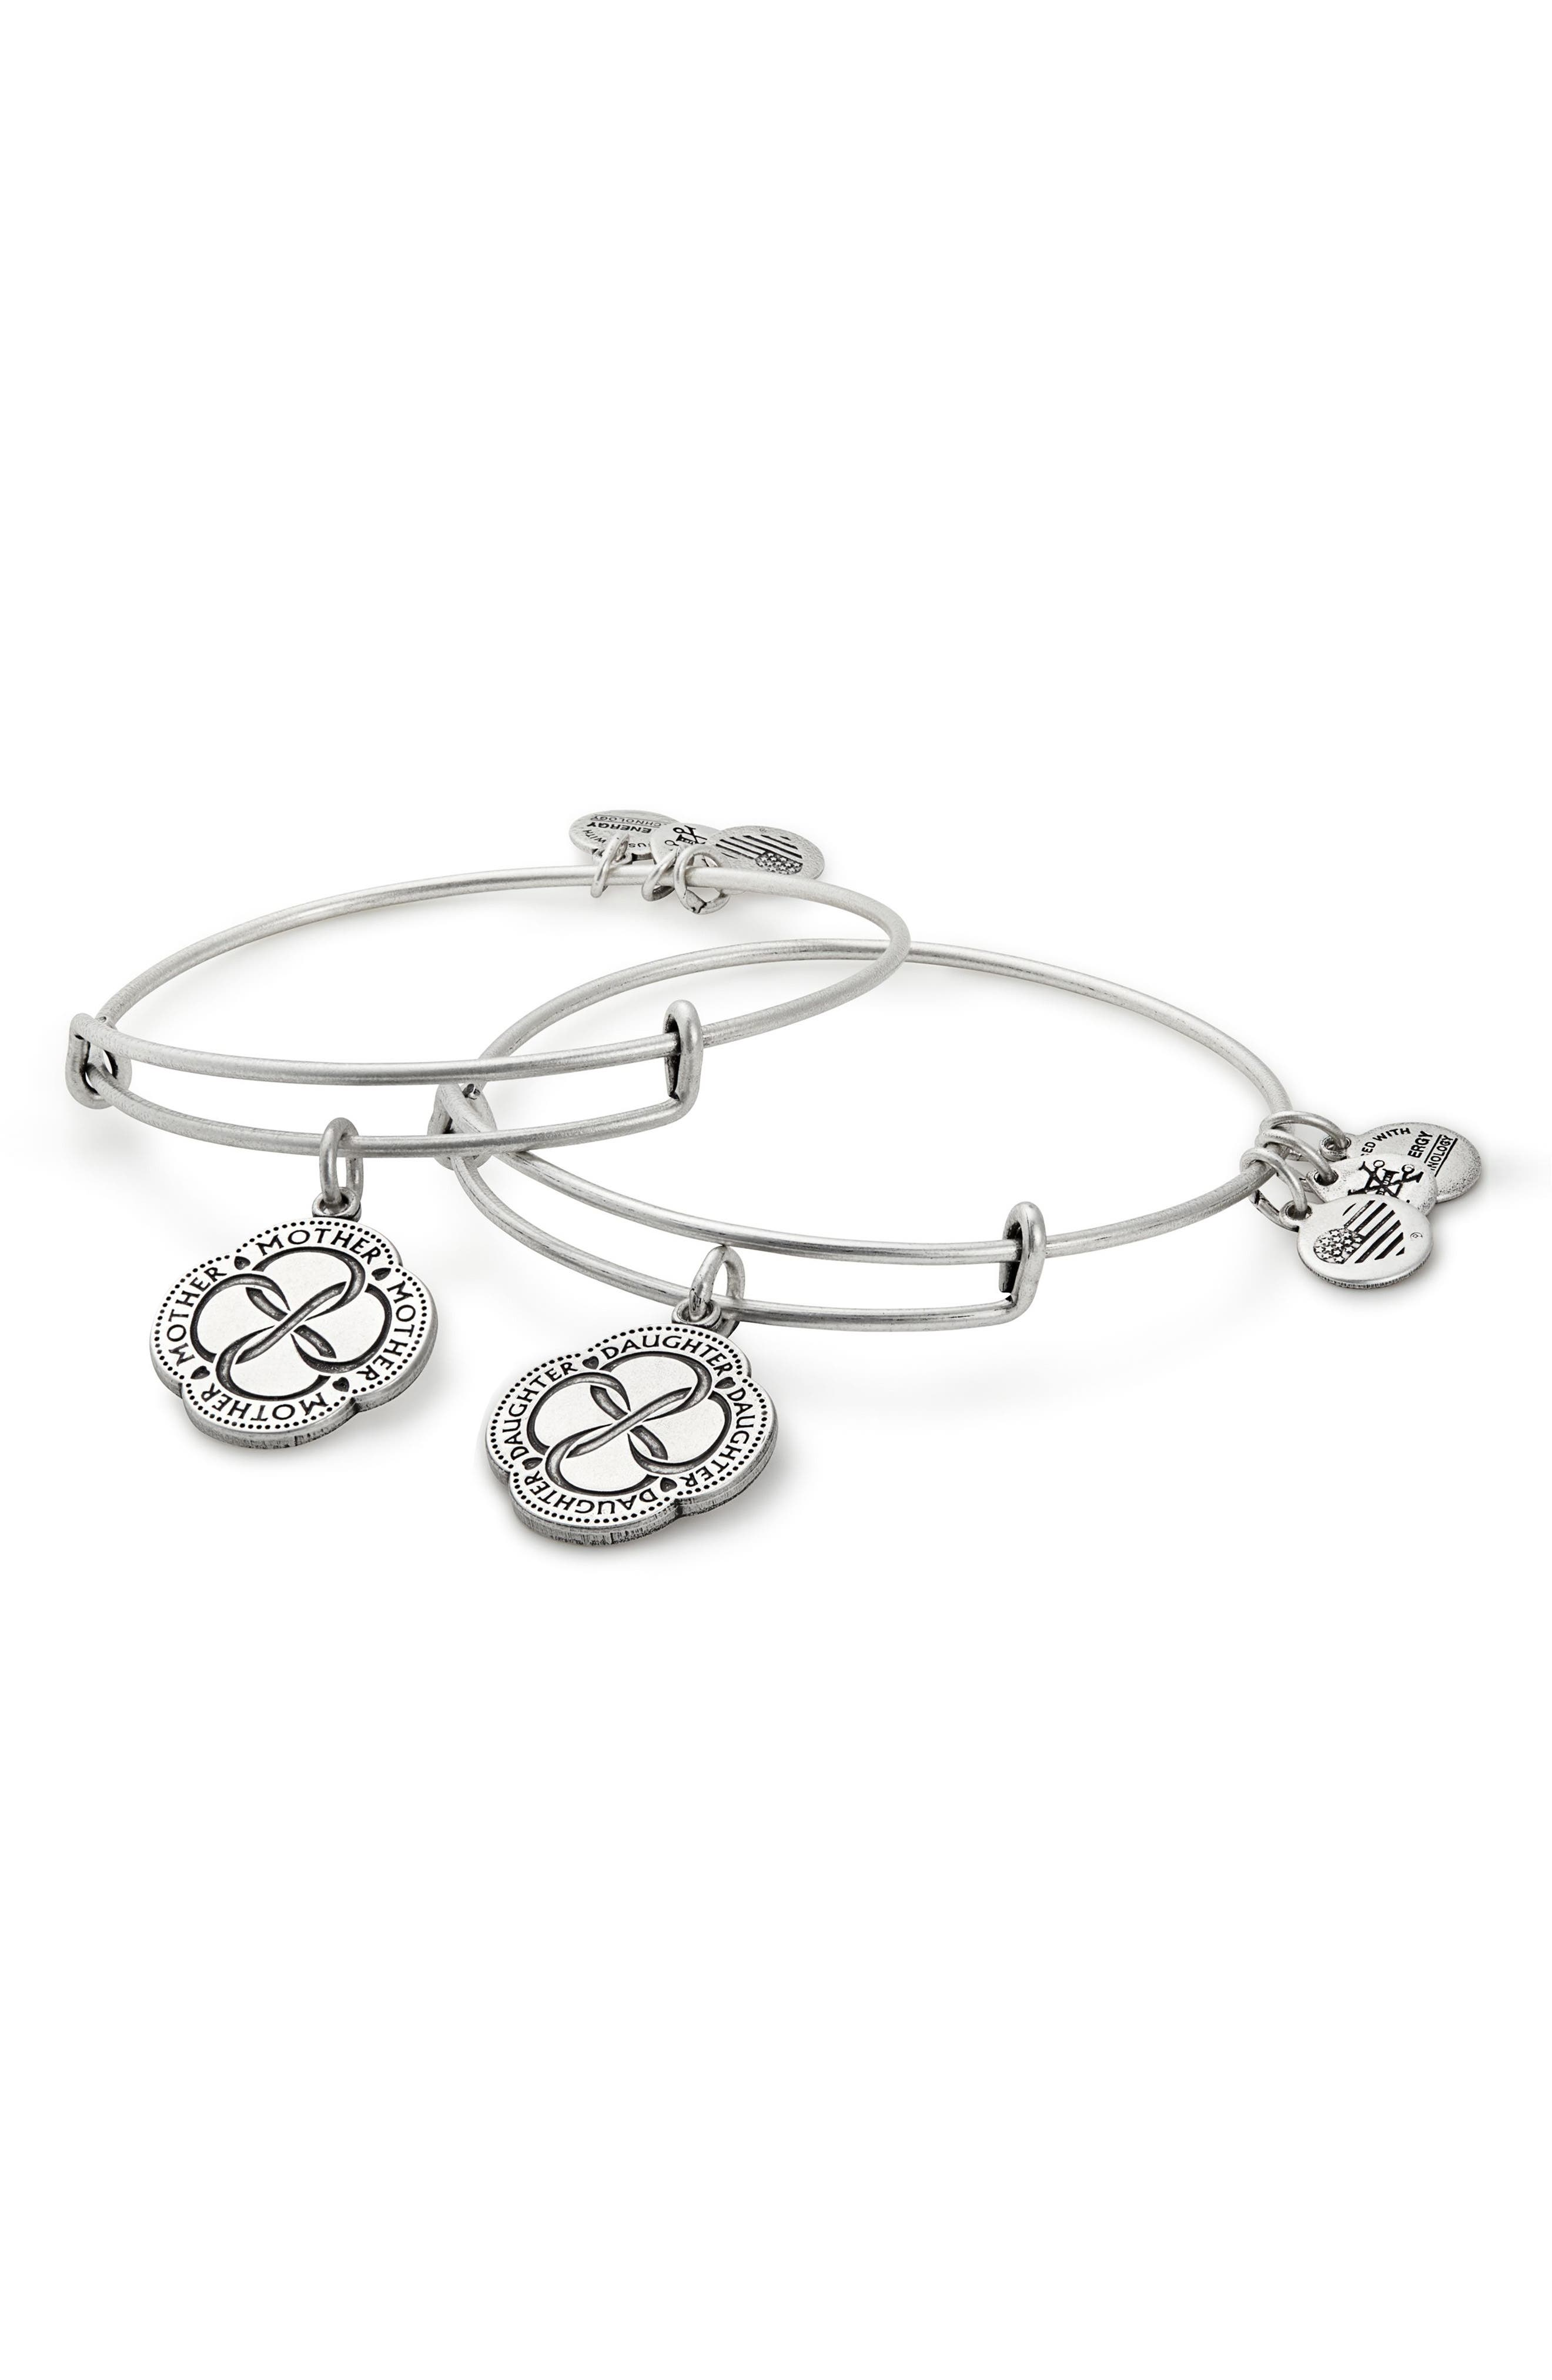 Infinite Connection Set of 2 Adjustable Wire Bangles,                             Main thumbnail 1, color,                             SILVER